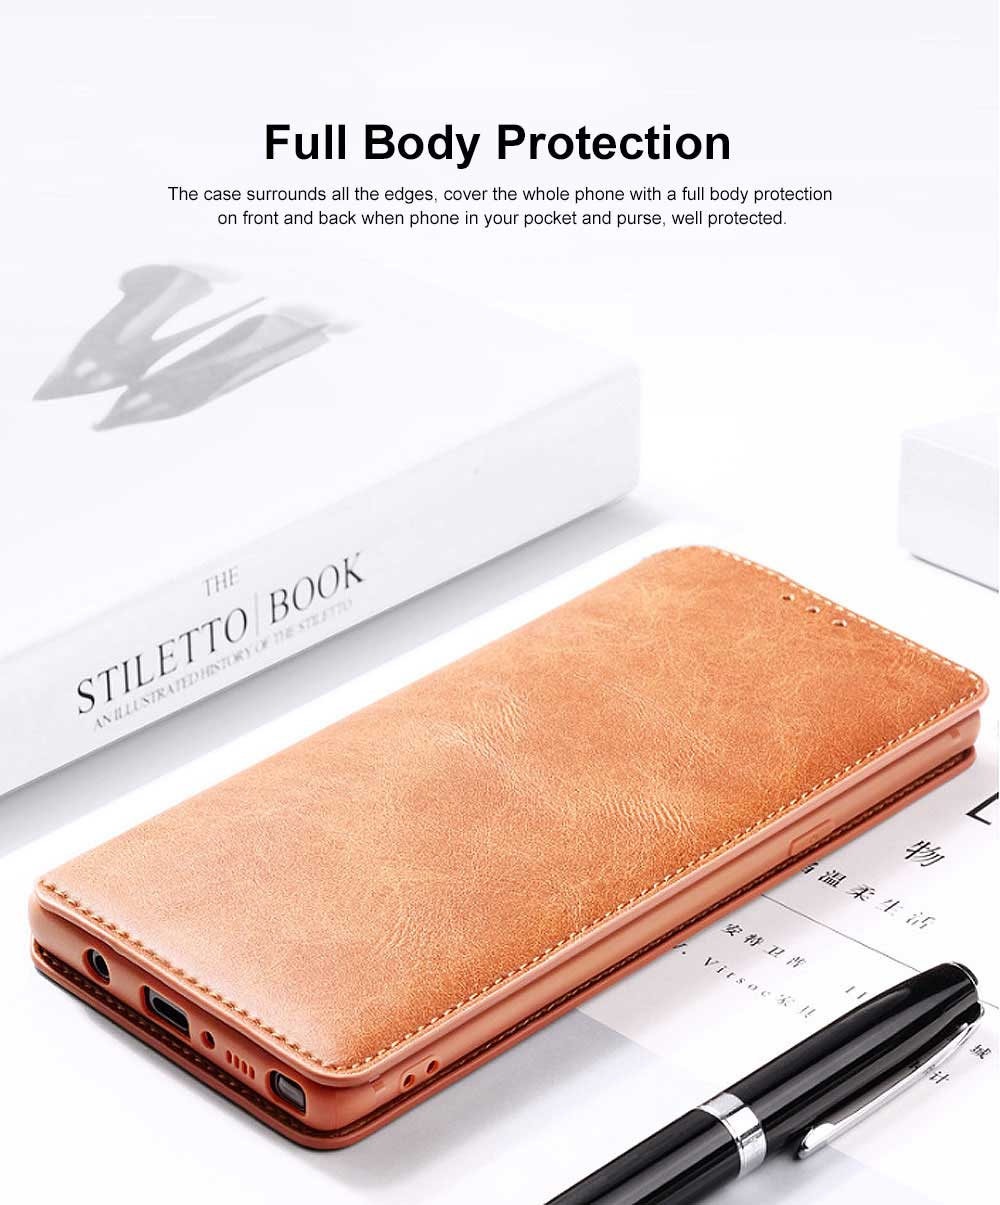 Soft TPU PU Leather Shockproof Protective Samsung Phone Case, Flip Case with Card Slot Samsung Soft Phone Cover for Samsung Galaxy Note 9, S9 plus, S9, S10, S10 plus, S10E, S10 Lite 2